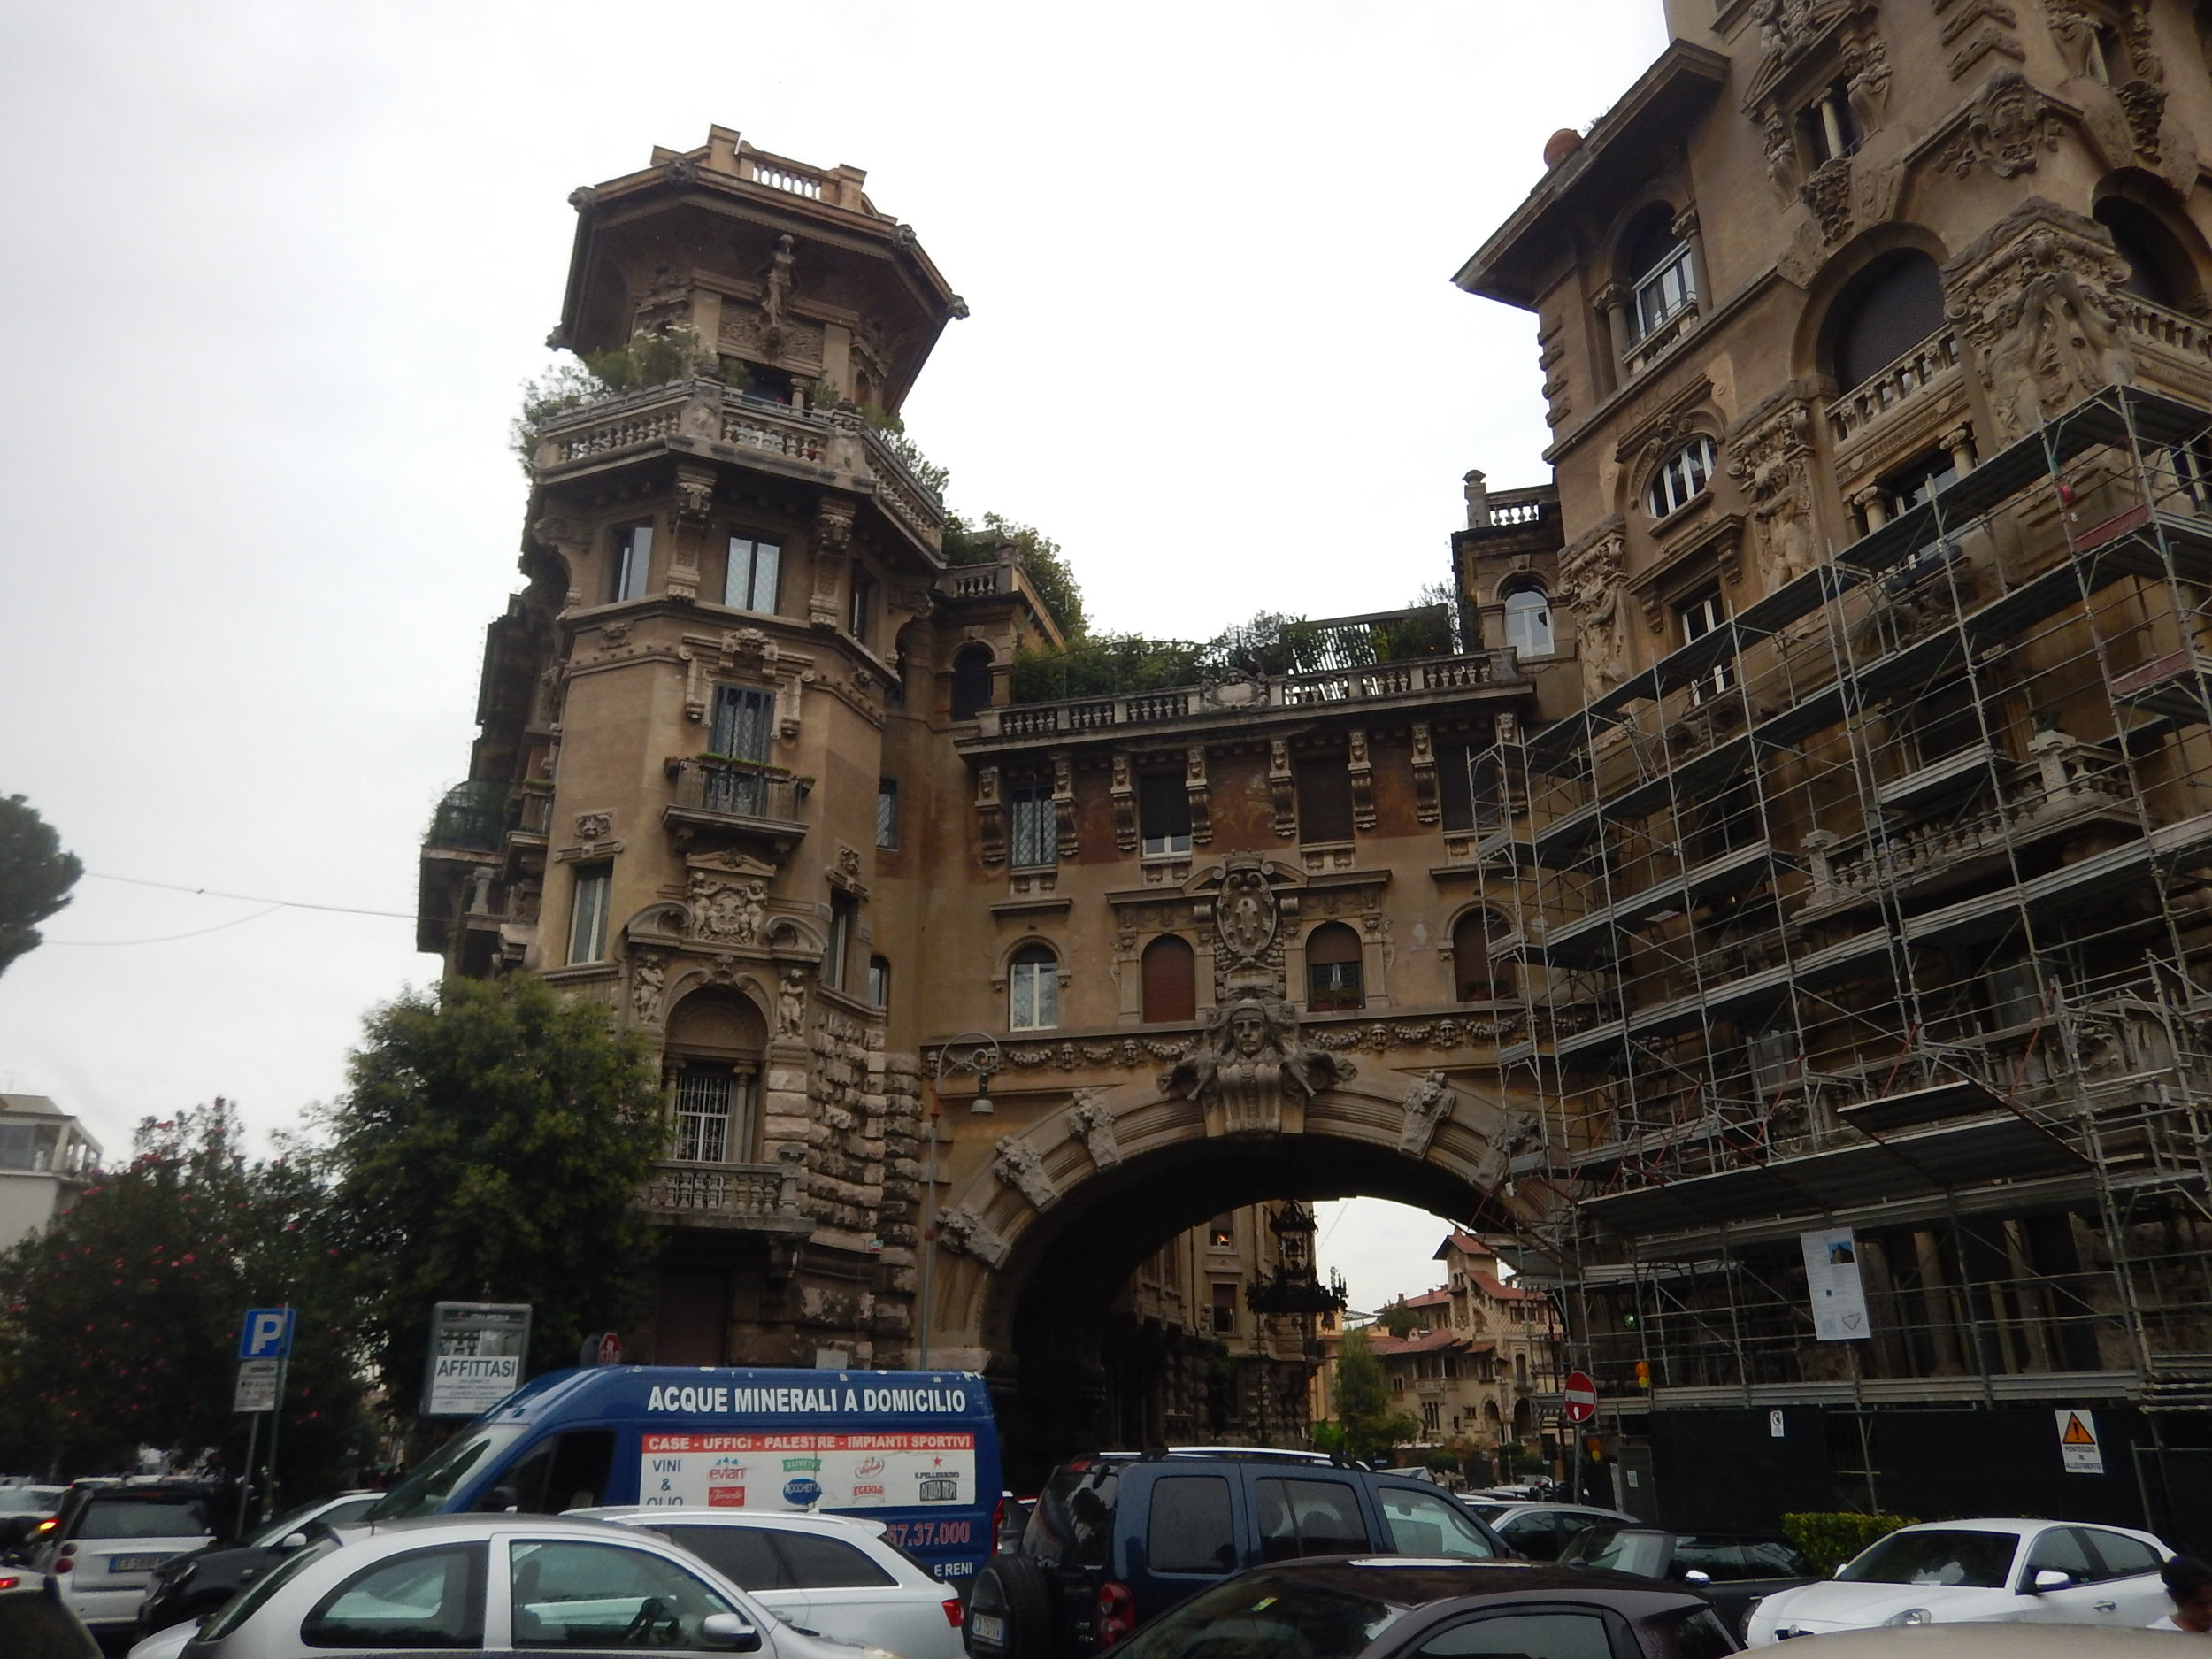 this structure might be regarded as the entrance to the Coppede Quartiere. Very limited parking within the area.